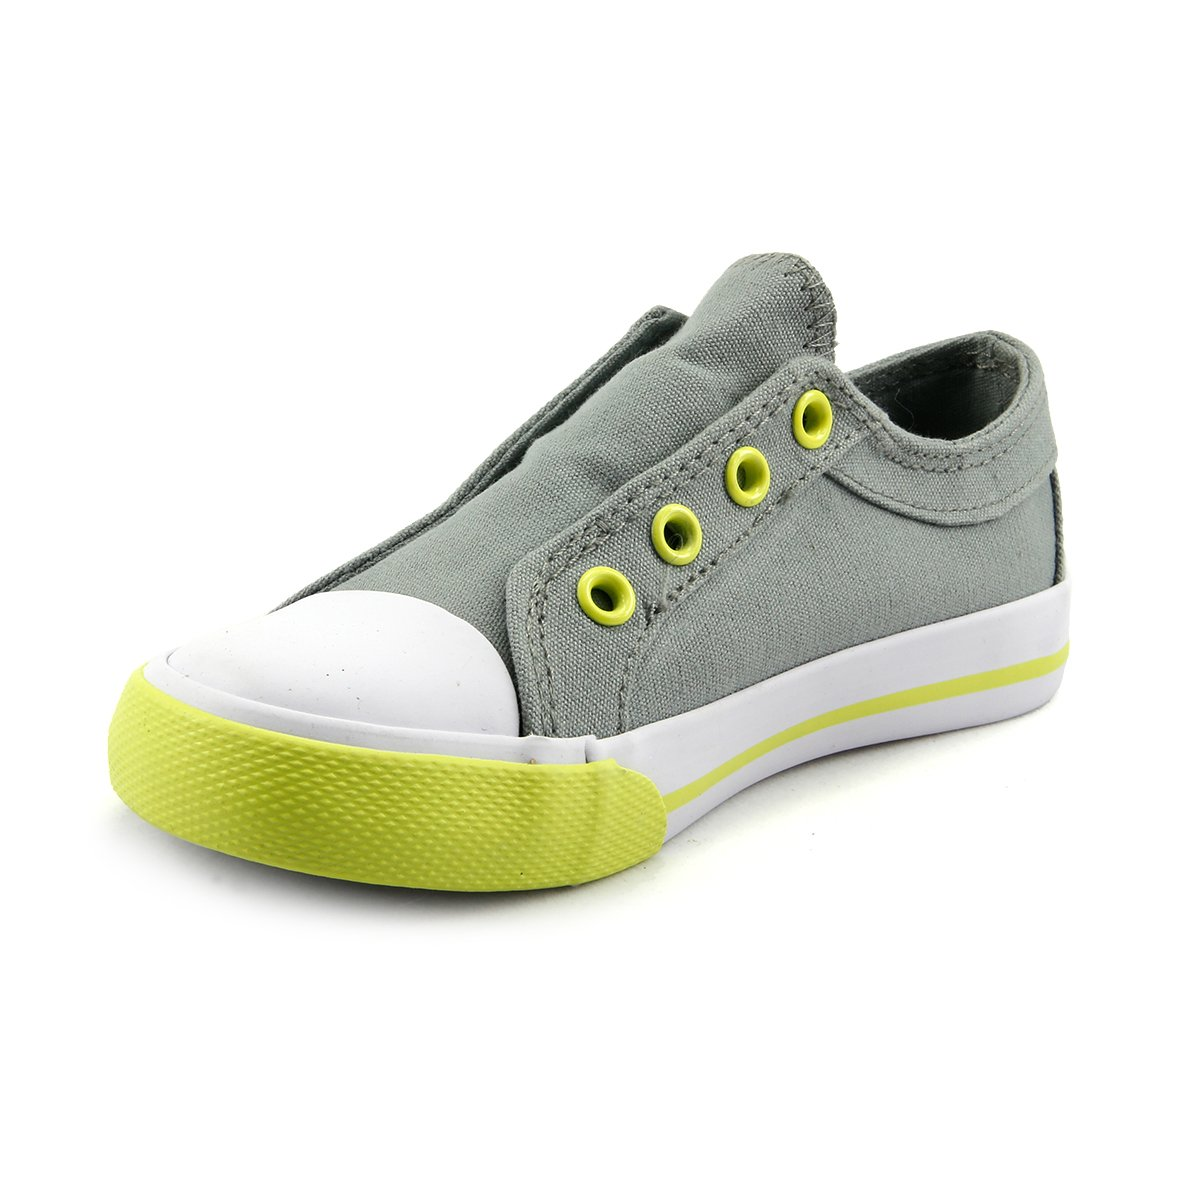 Unisex Boy/'s Girl/'s Slip On Cotton Canvas Sneaker Shoes Youth Size